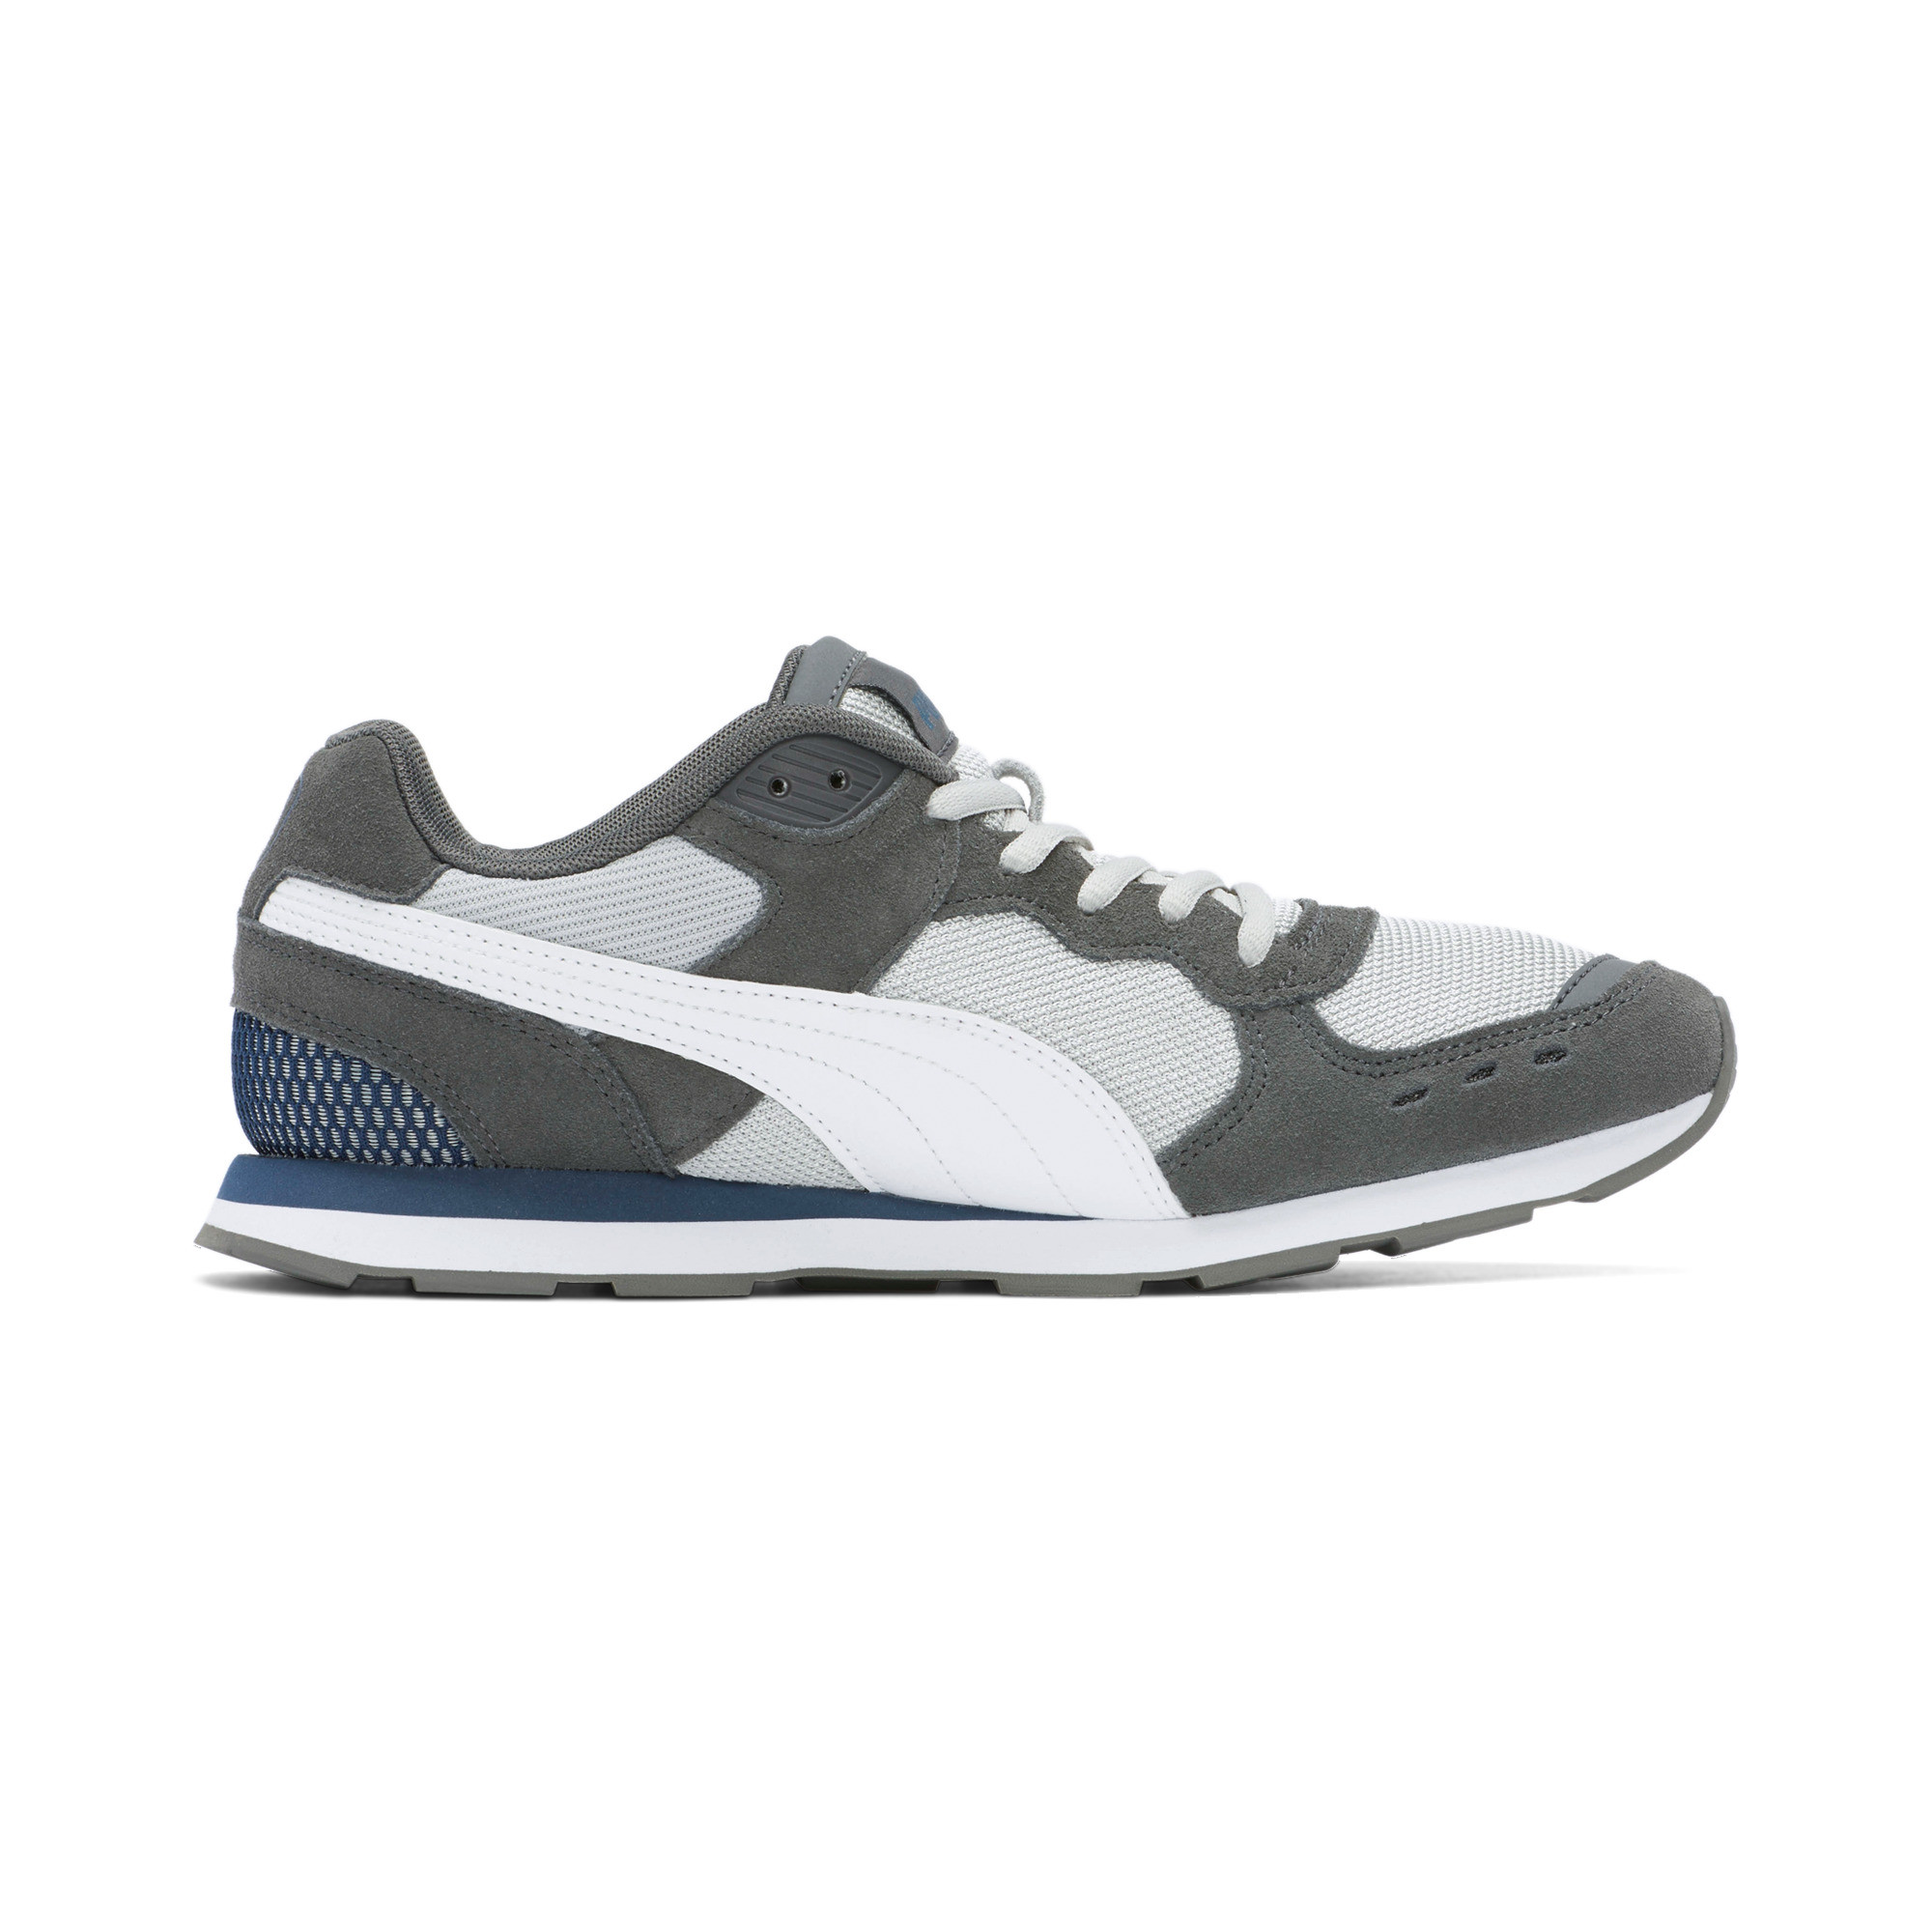 PUMA-Men-039-s-Vista-Sneakers thumbnail 40